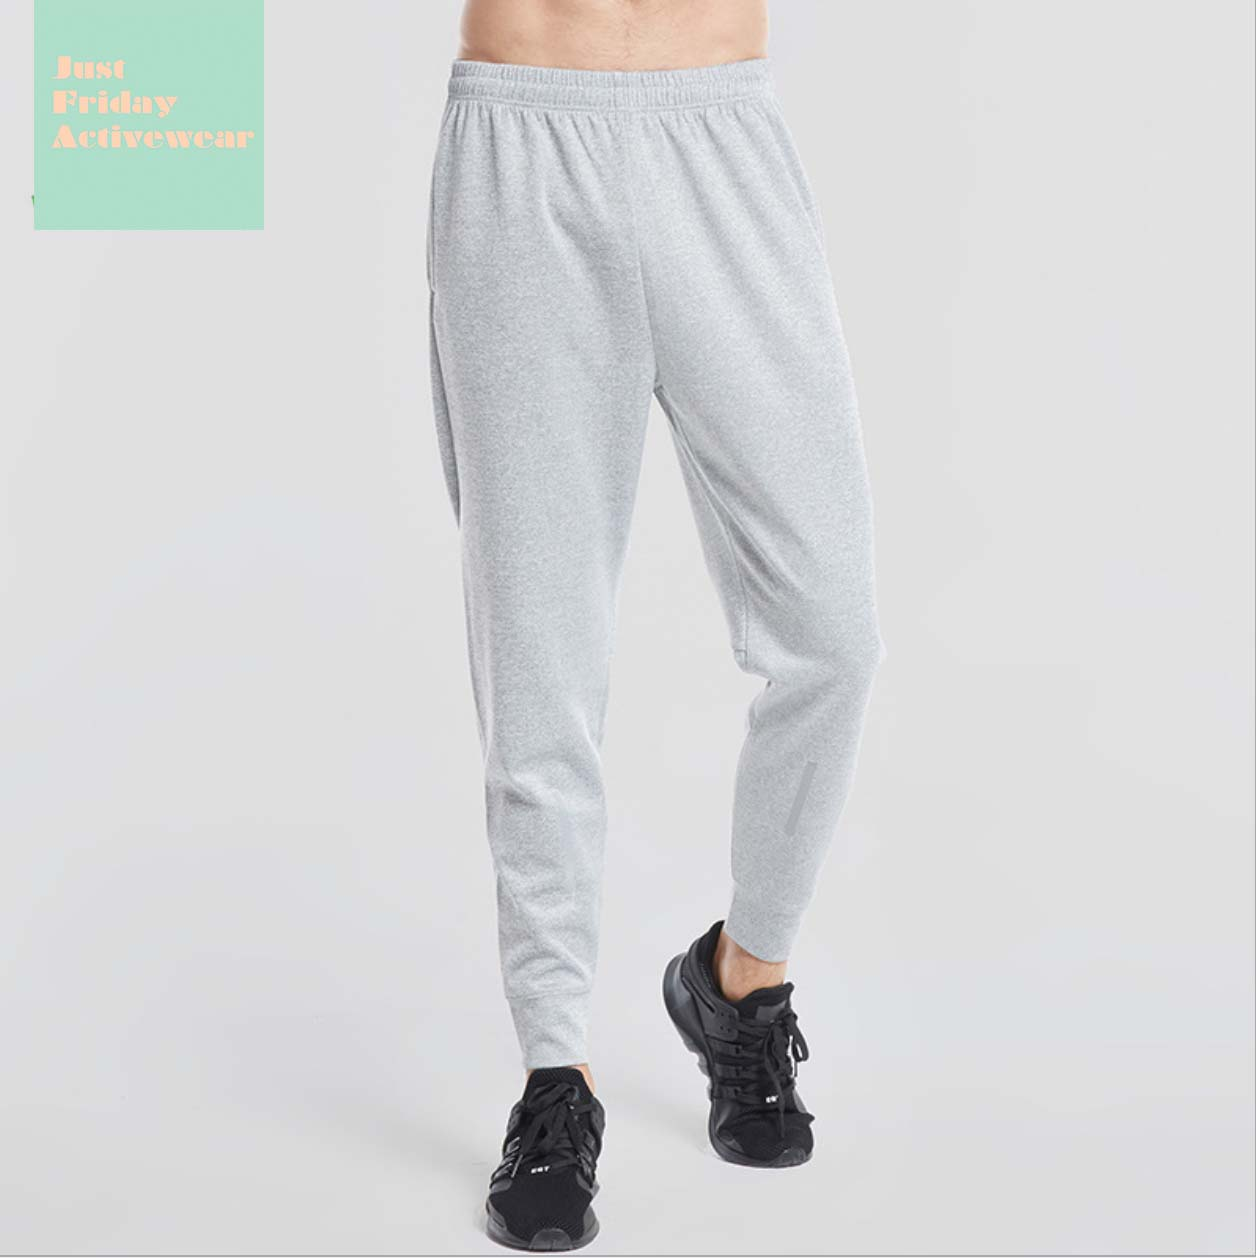 Comfy Mid Rise Zipper Detailing Gym Work Out Mens' Pants